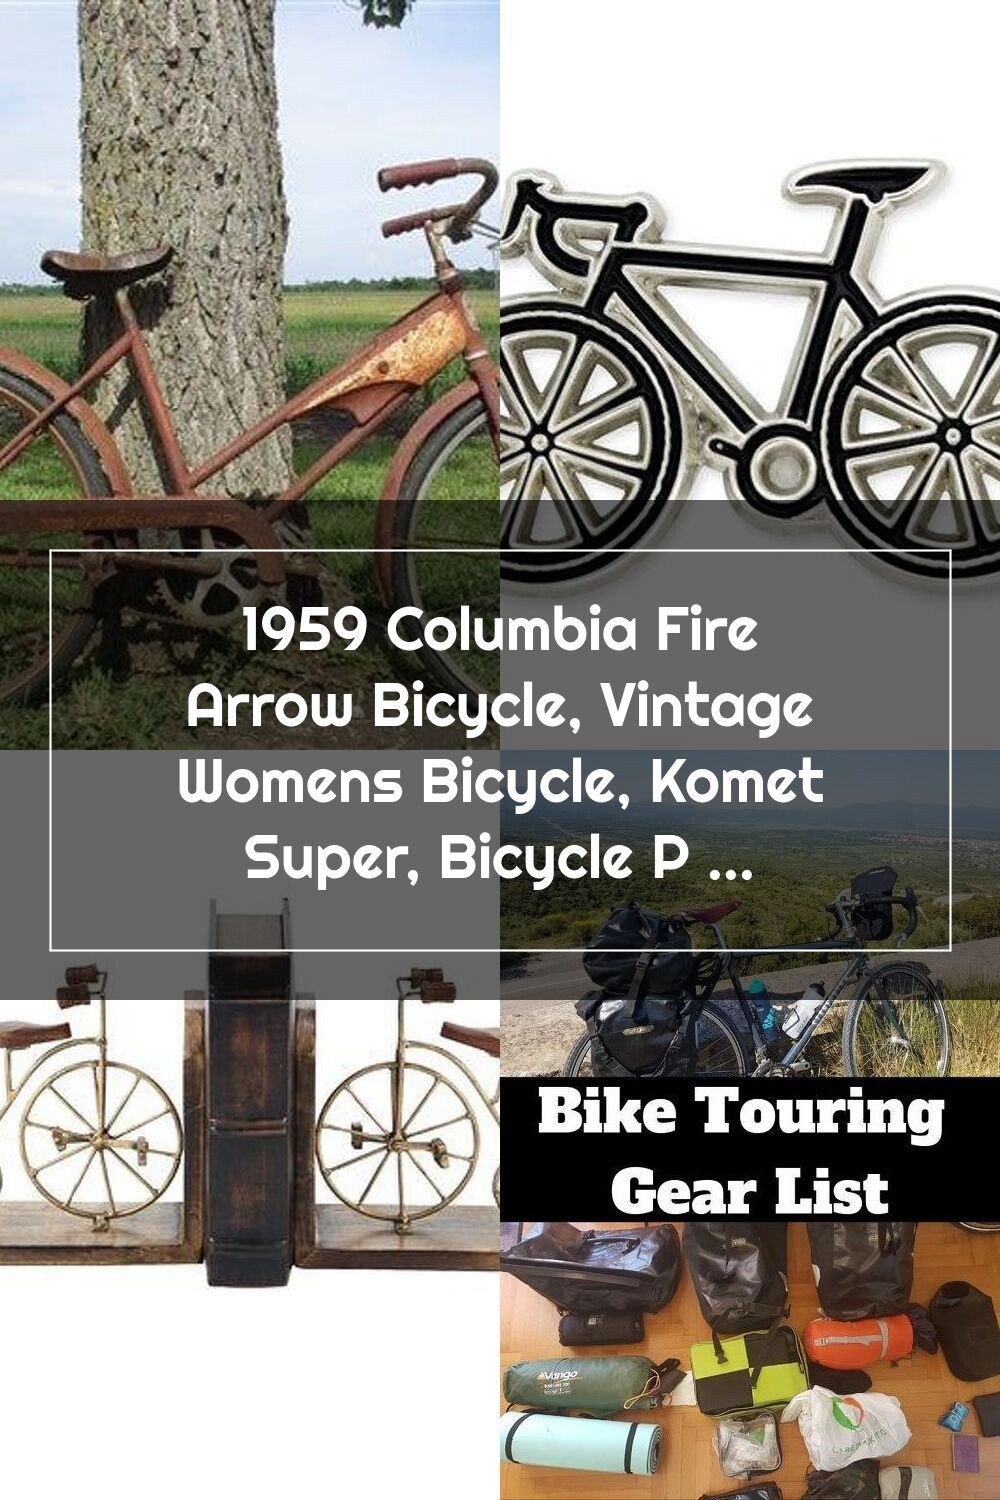 1959 Columbia Fire Arrow Bicycle Vintage Womens Bicycle Komet Super Bicy In 2020 Bicycle Women Bicycle Bike Touring Gear